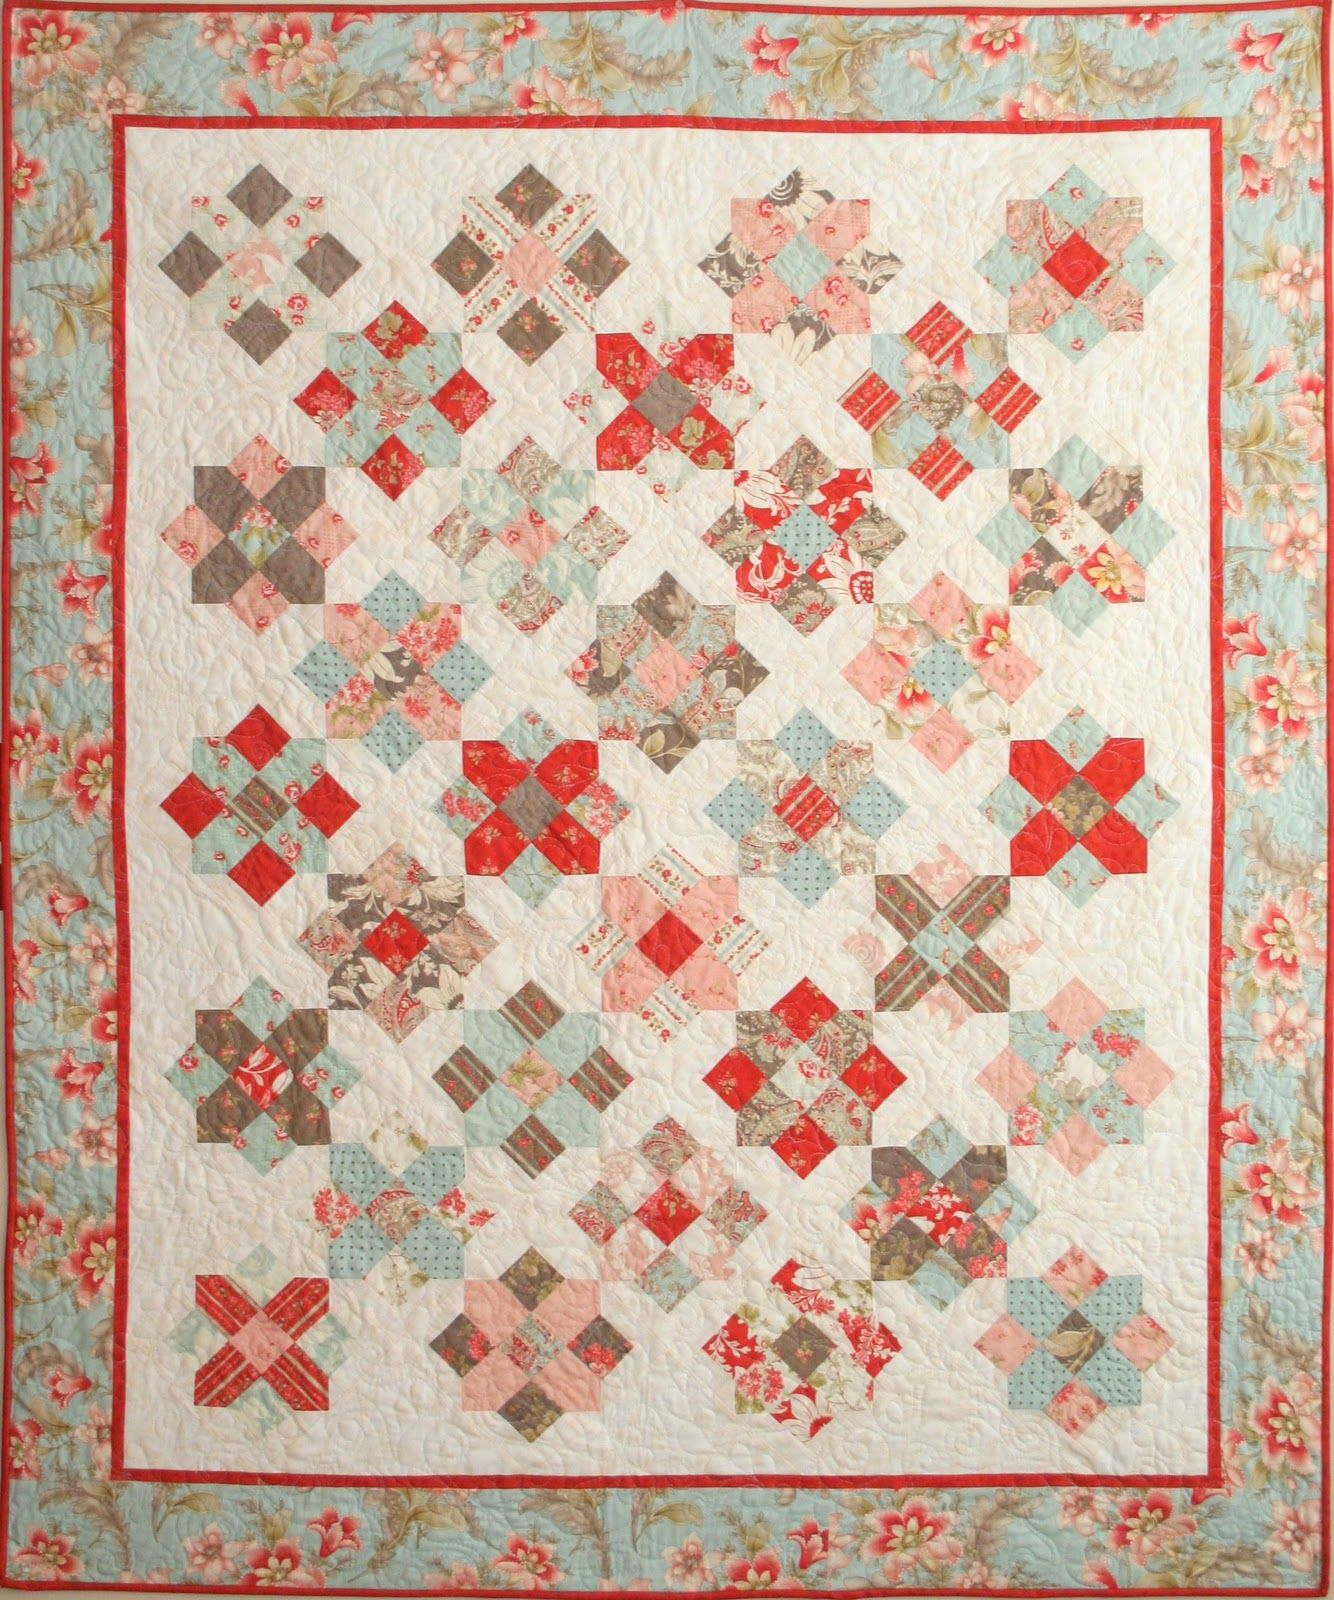 Love That 3 Sisters Fabric Quilts 2 Layer Cake Quilt Patterns